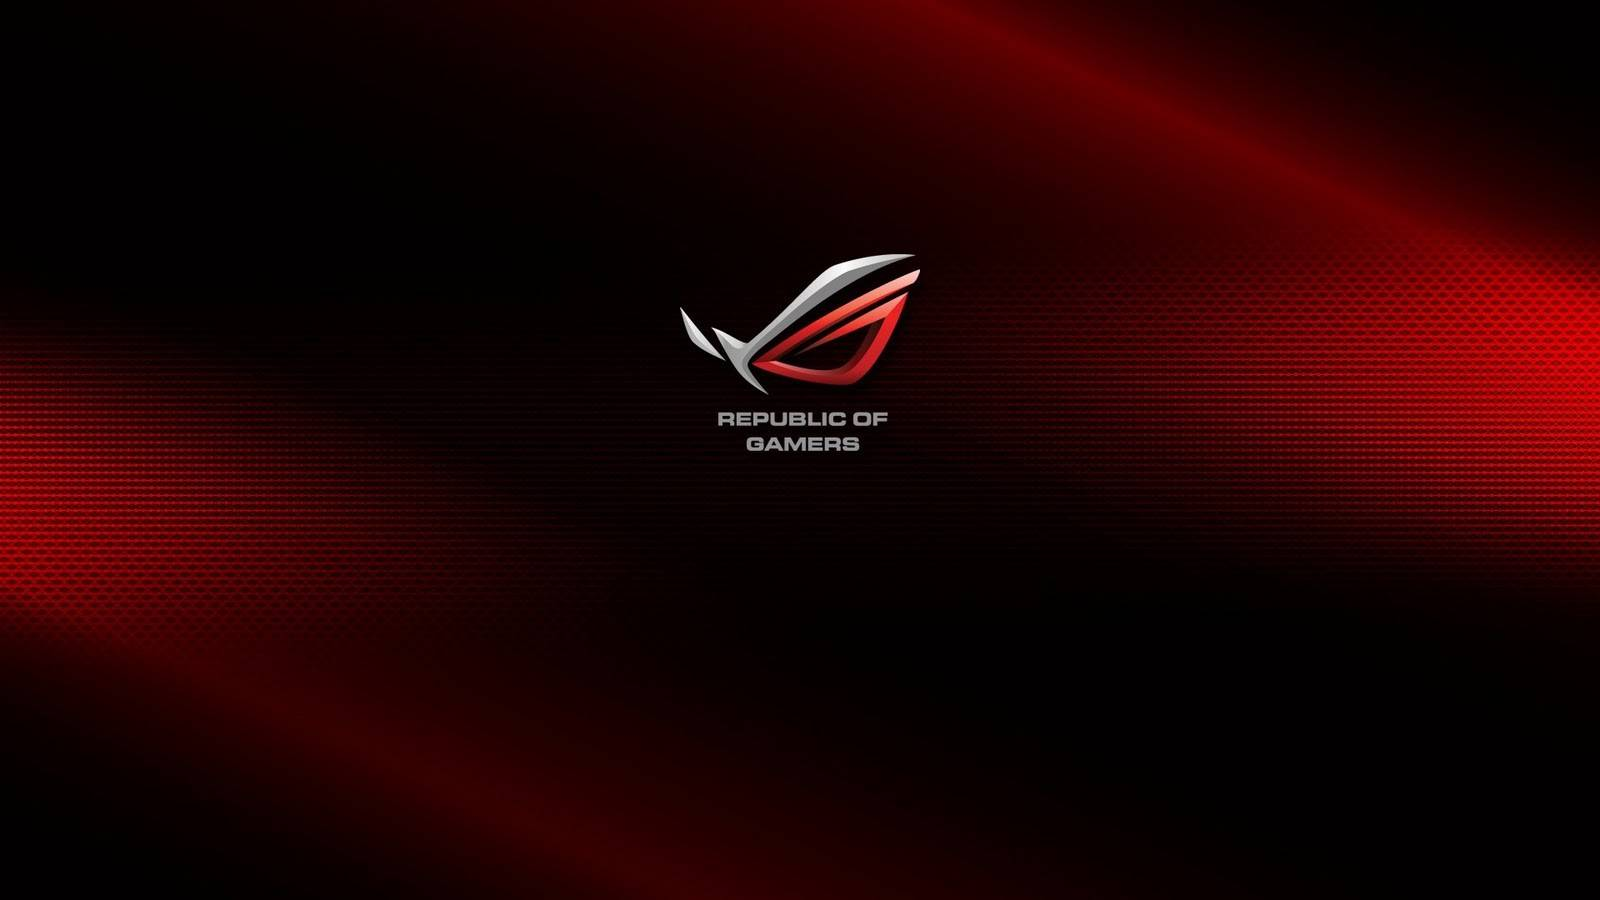 rog official wallpaper 2013 - photo #35